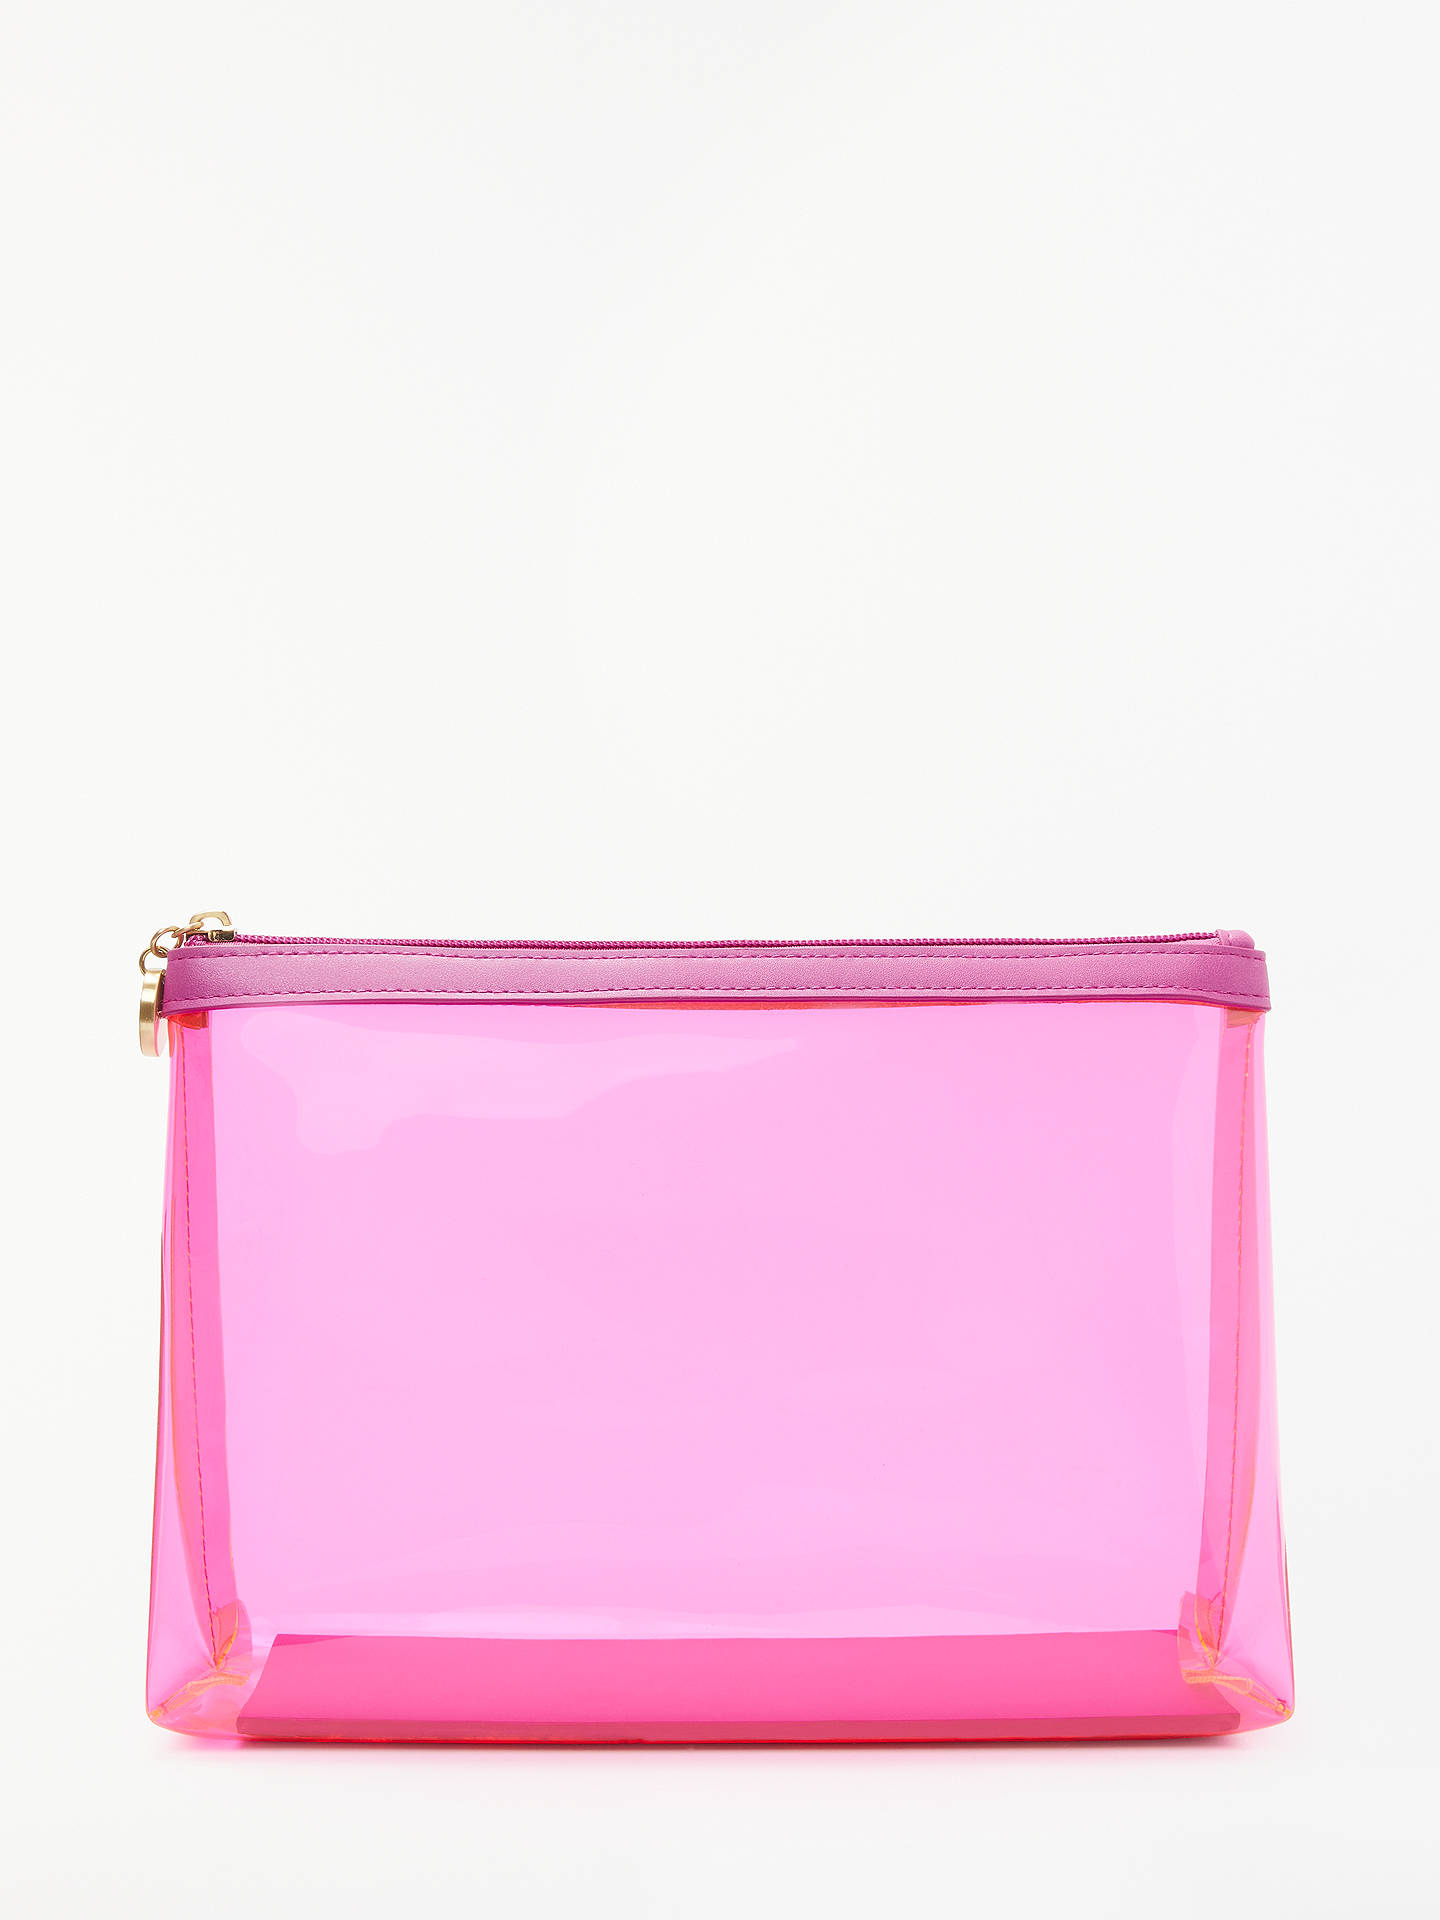 2850954fb8e6 Buy John Lewis & Partners Tabitha Large Transparent Wash Bag, Pink Online  at johnlewis.